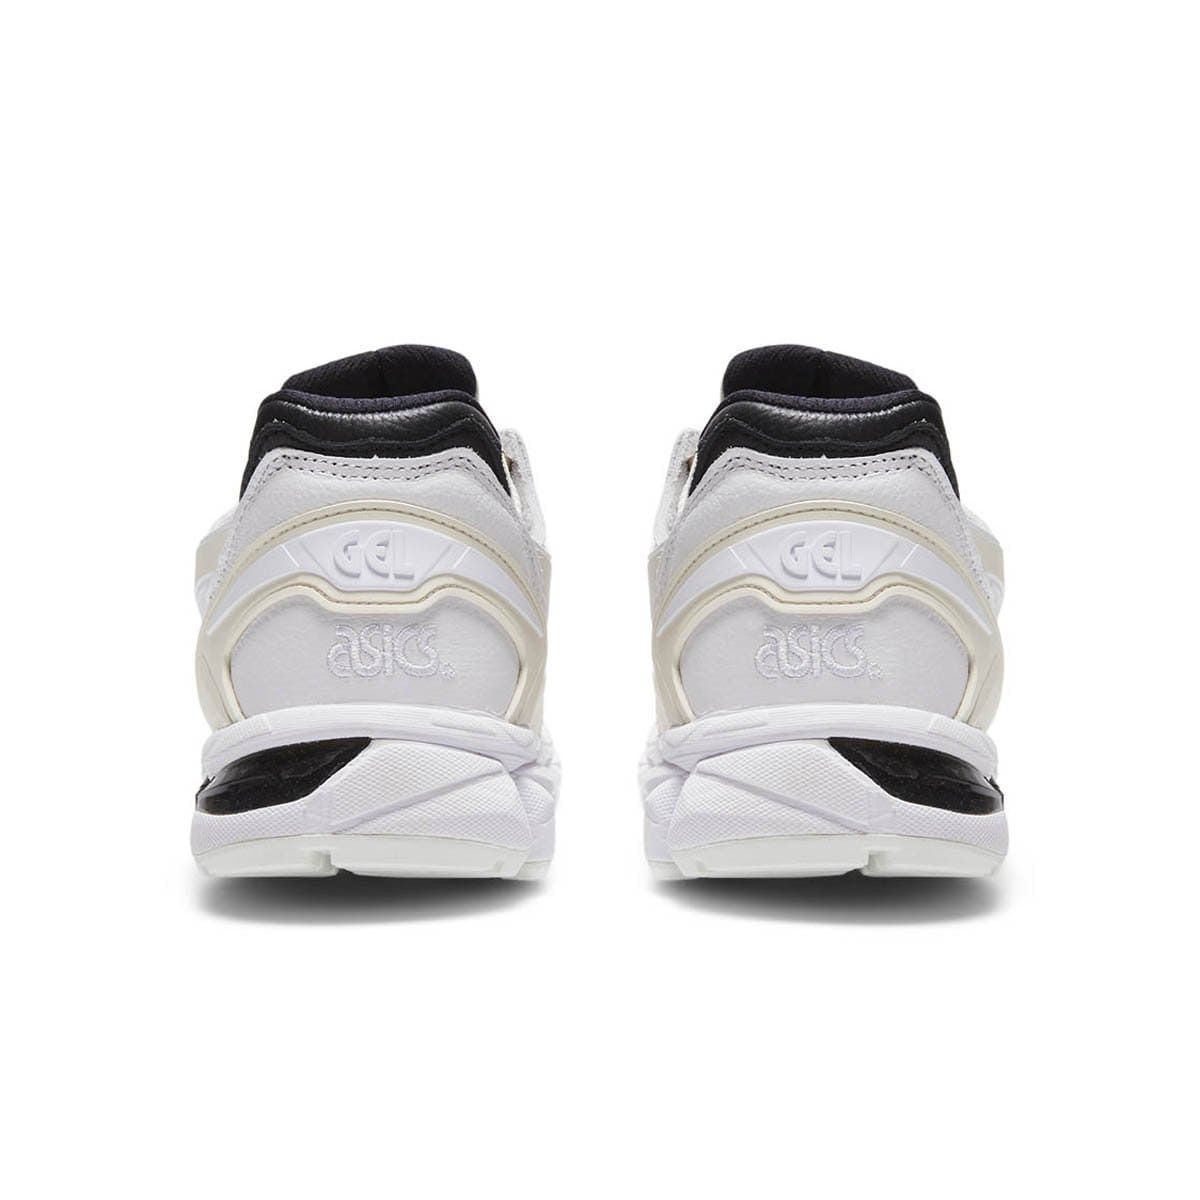 ASICS Shoes GEL-KAYANO TRAINER 21